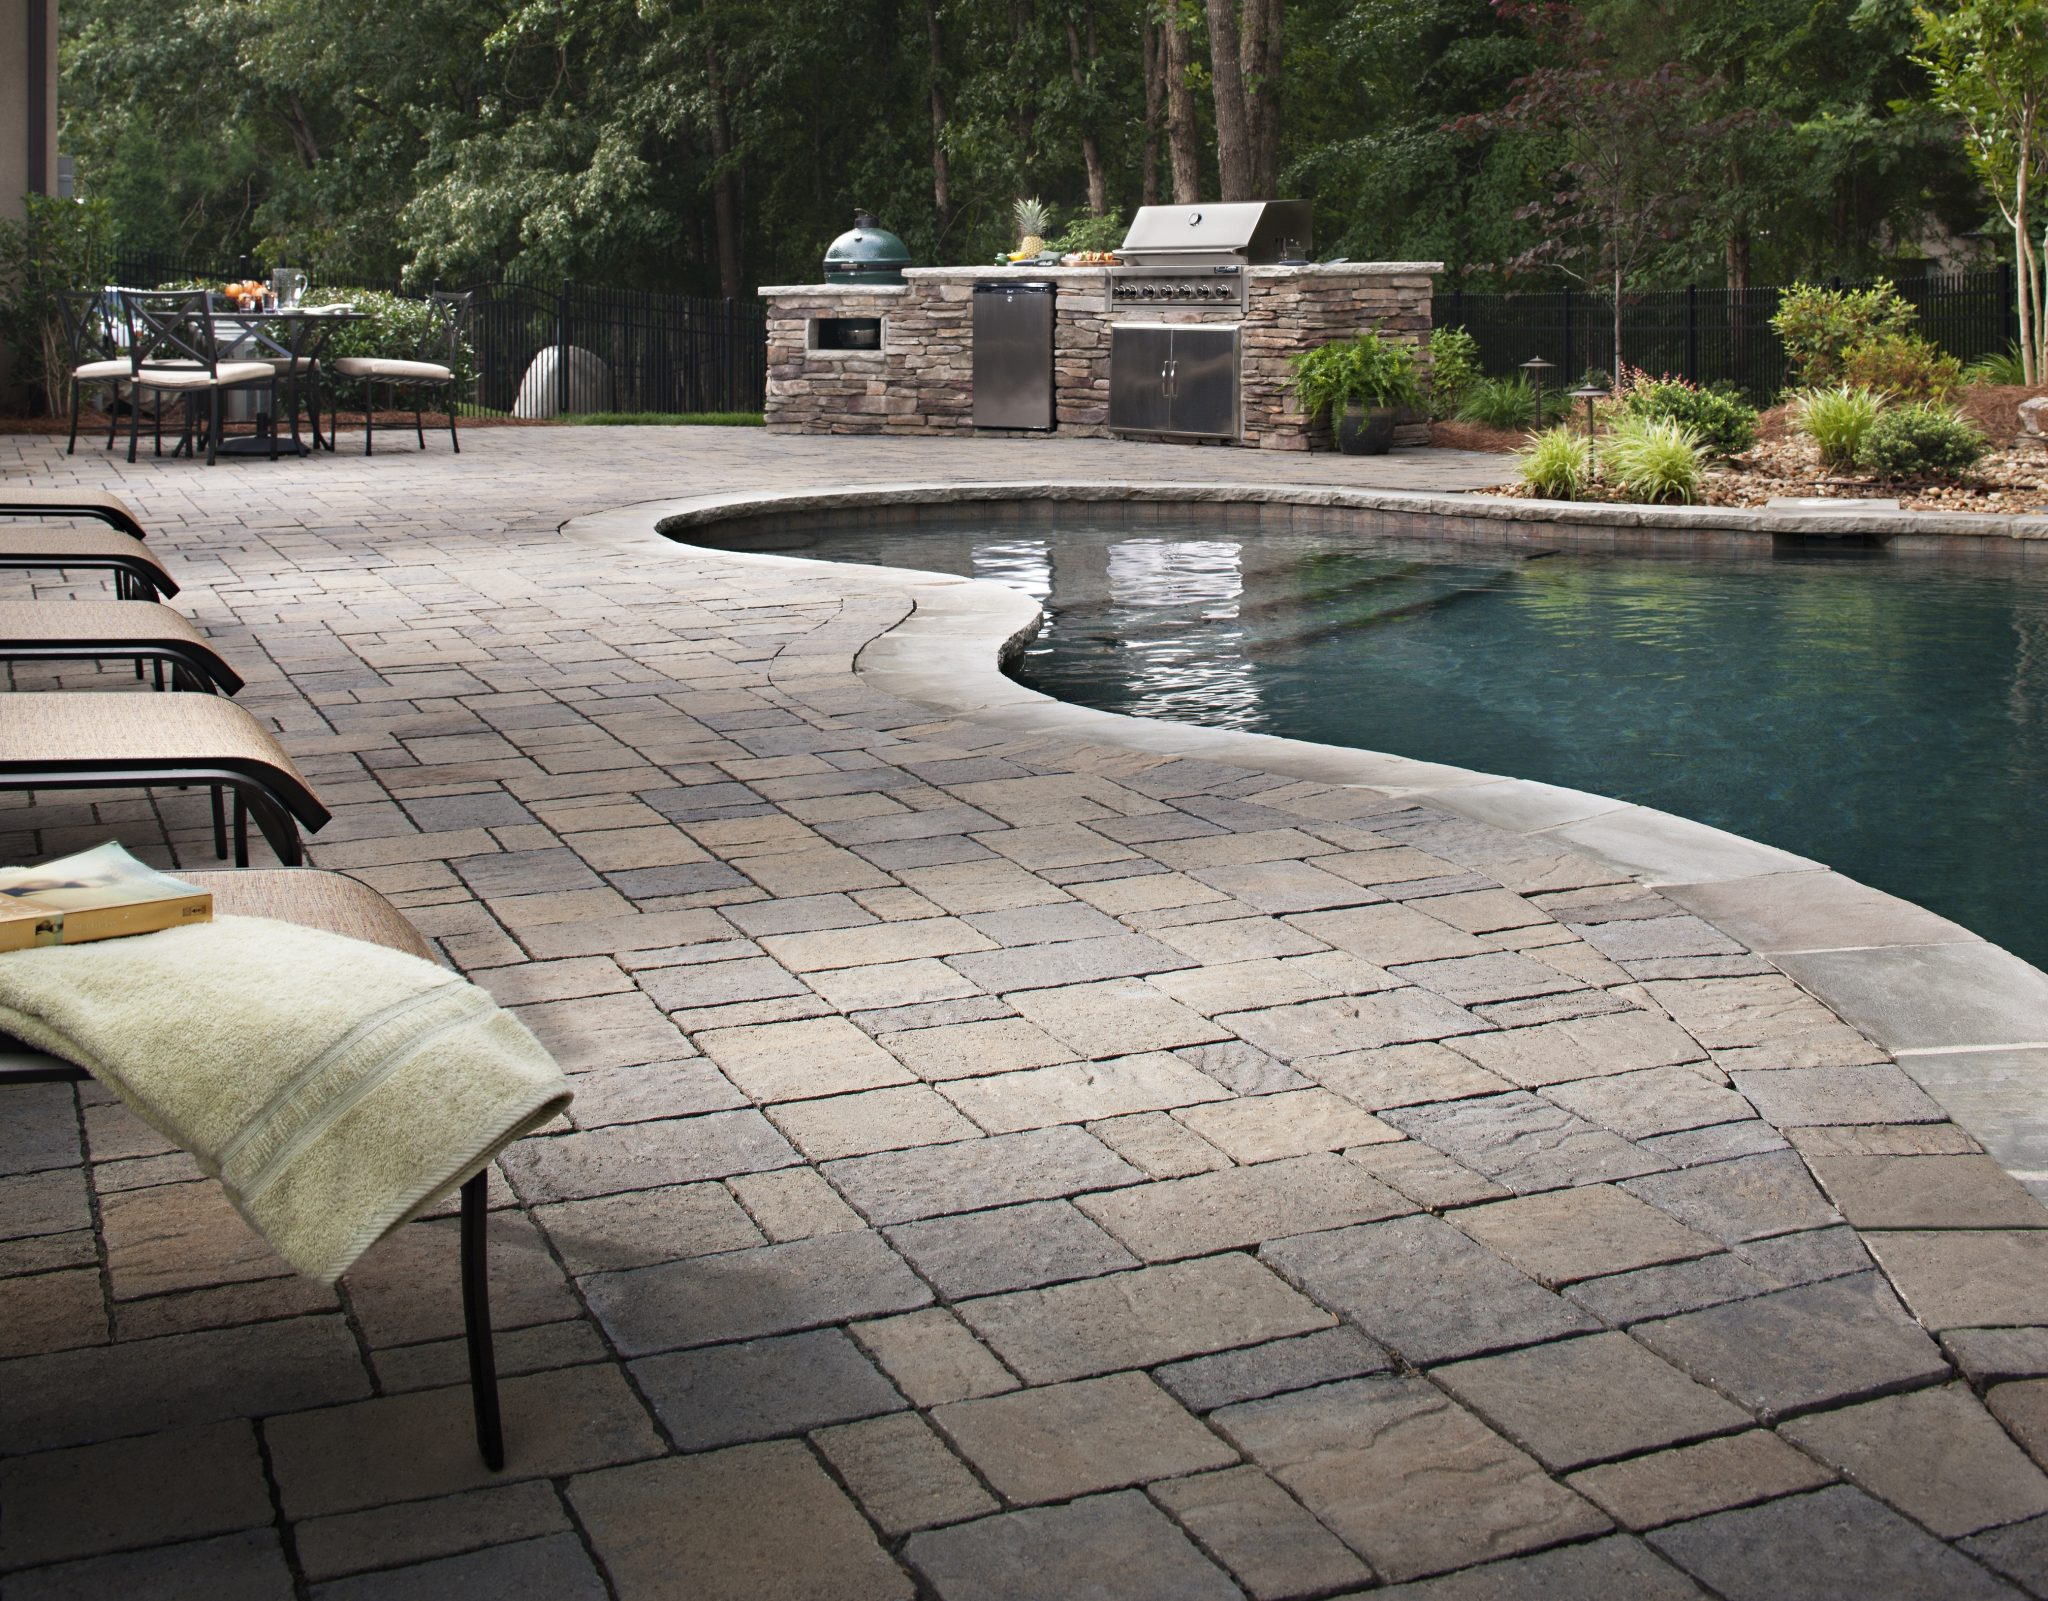 Poolside Pavers Guide How To Choose The Best Pool Deck Material Install It Direct